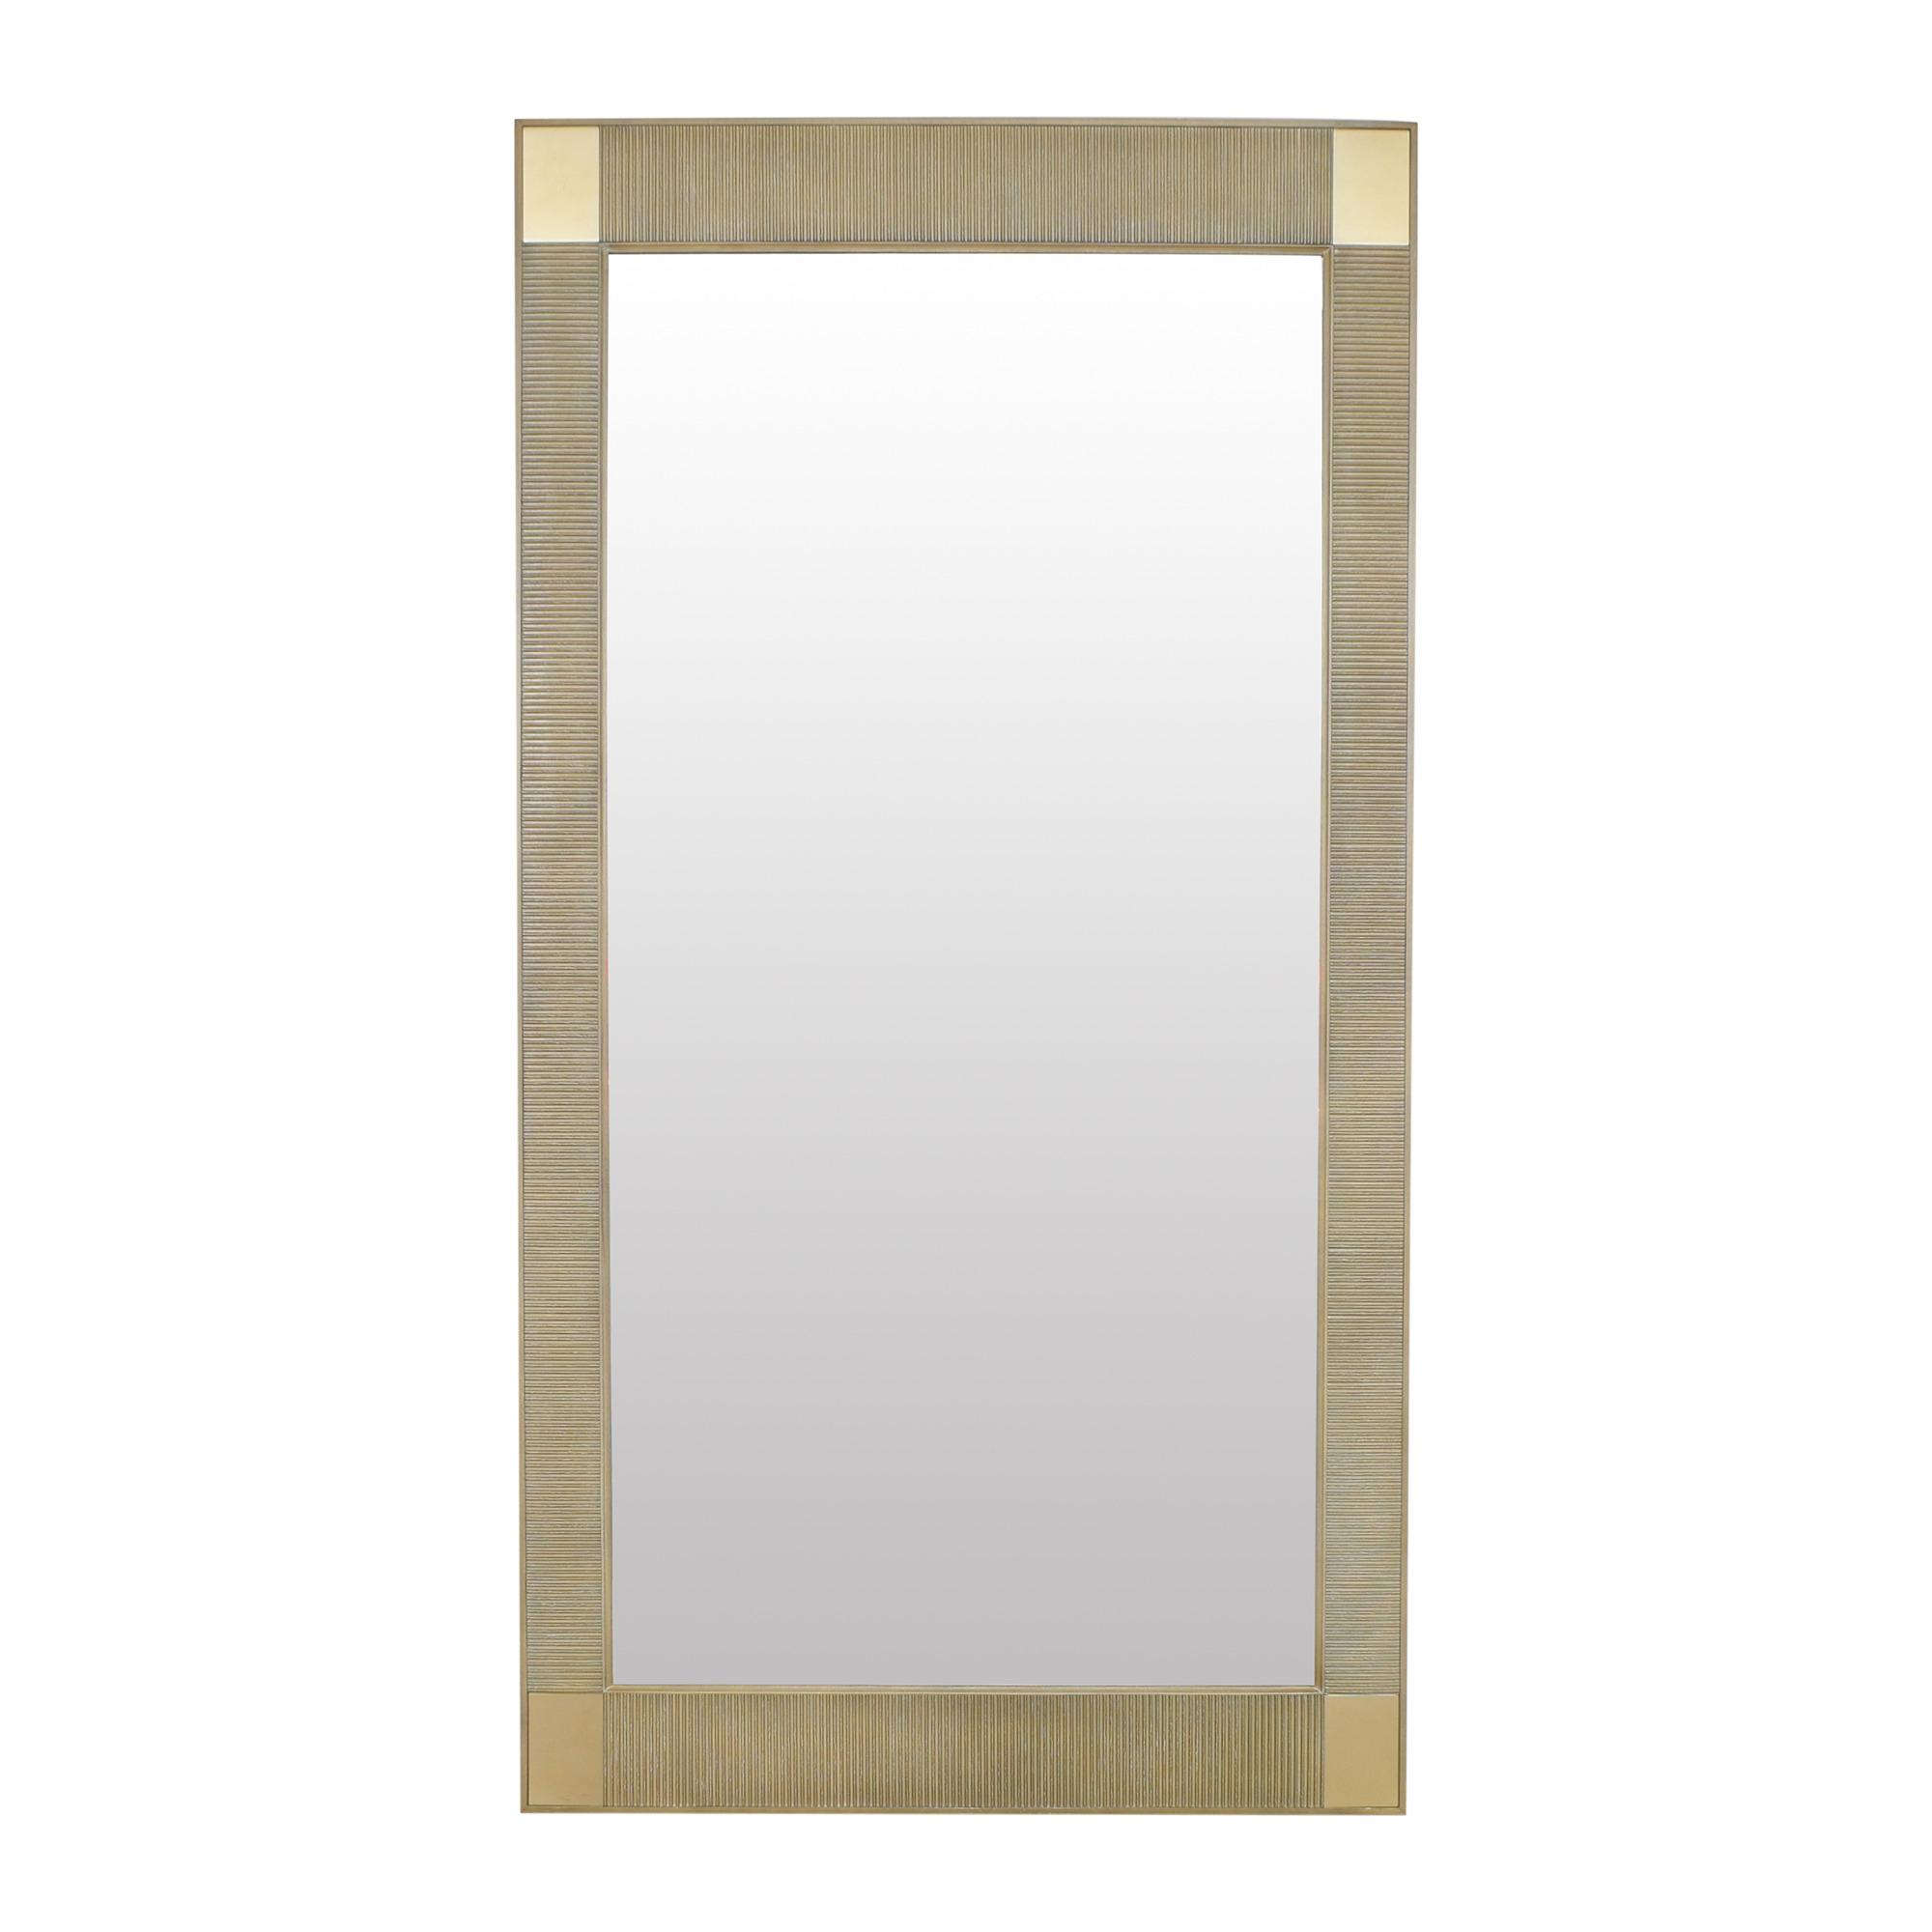 A.R.T. Furniture Cityscapes Collection Hudson Floor Mirror / Decor